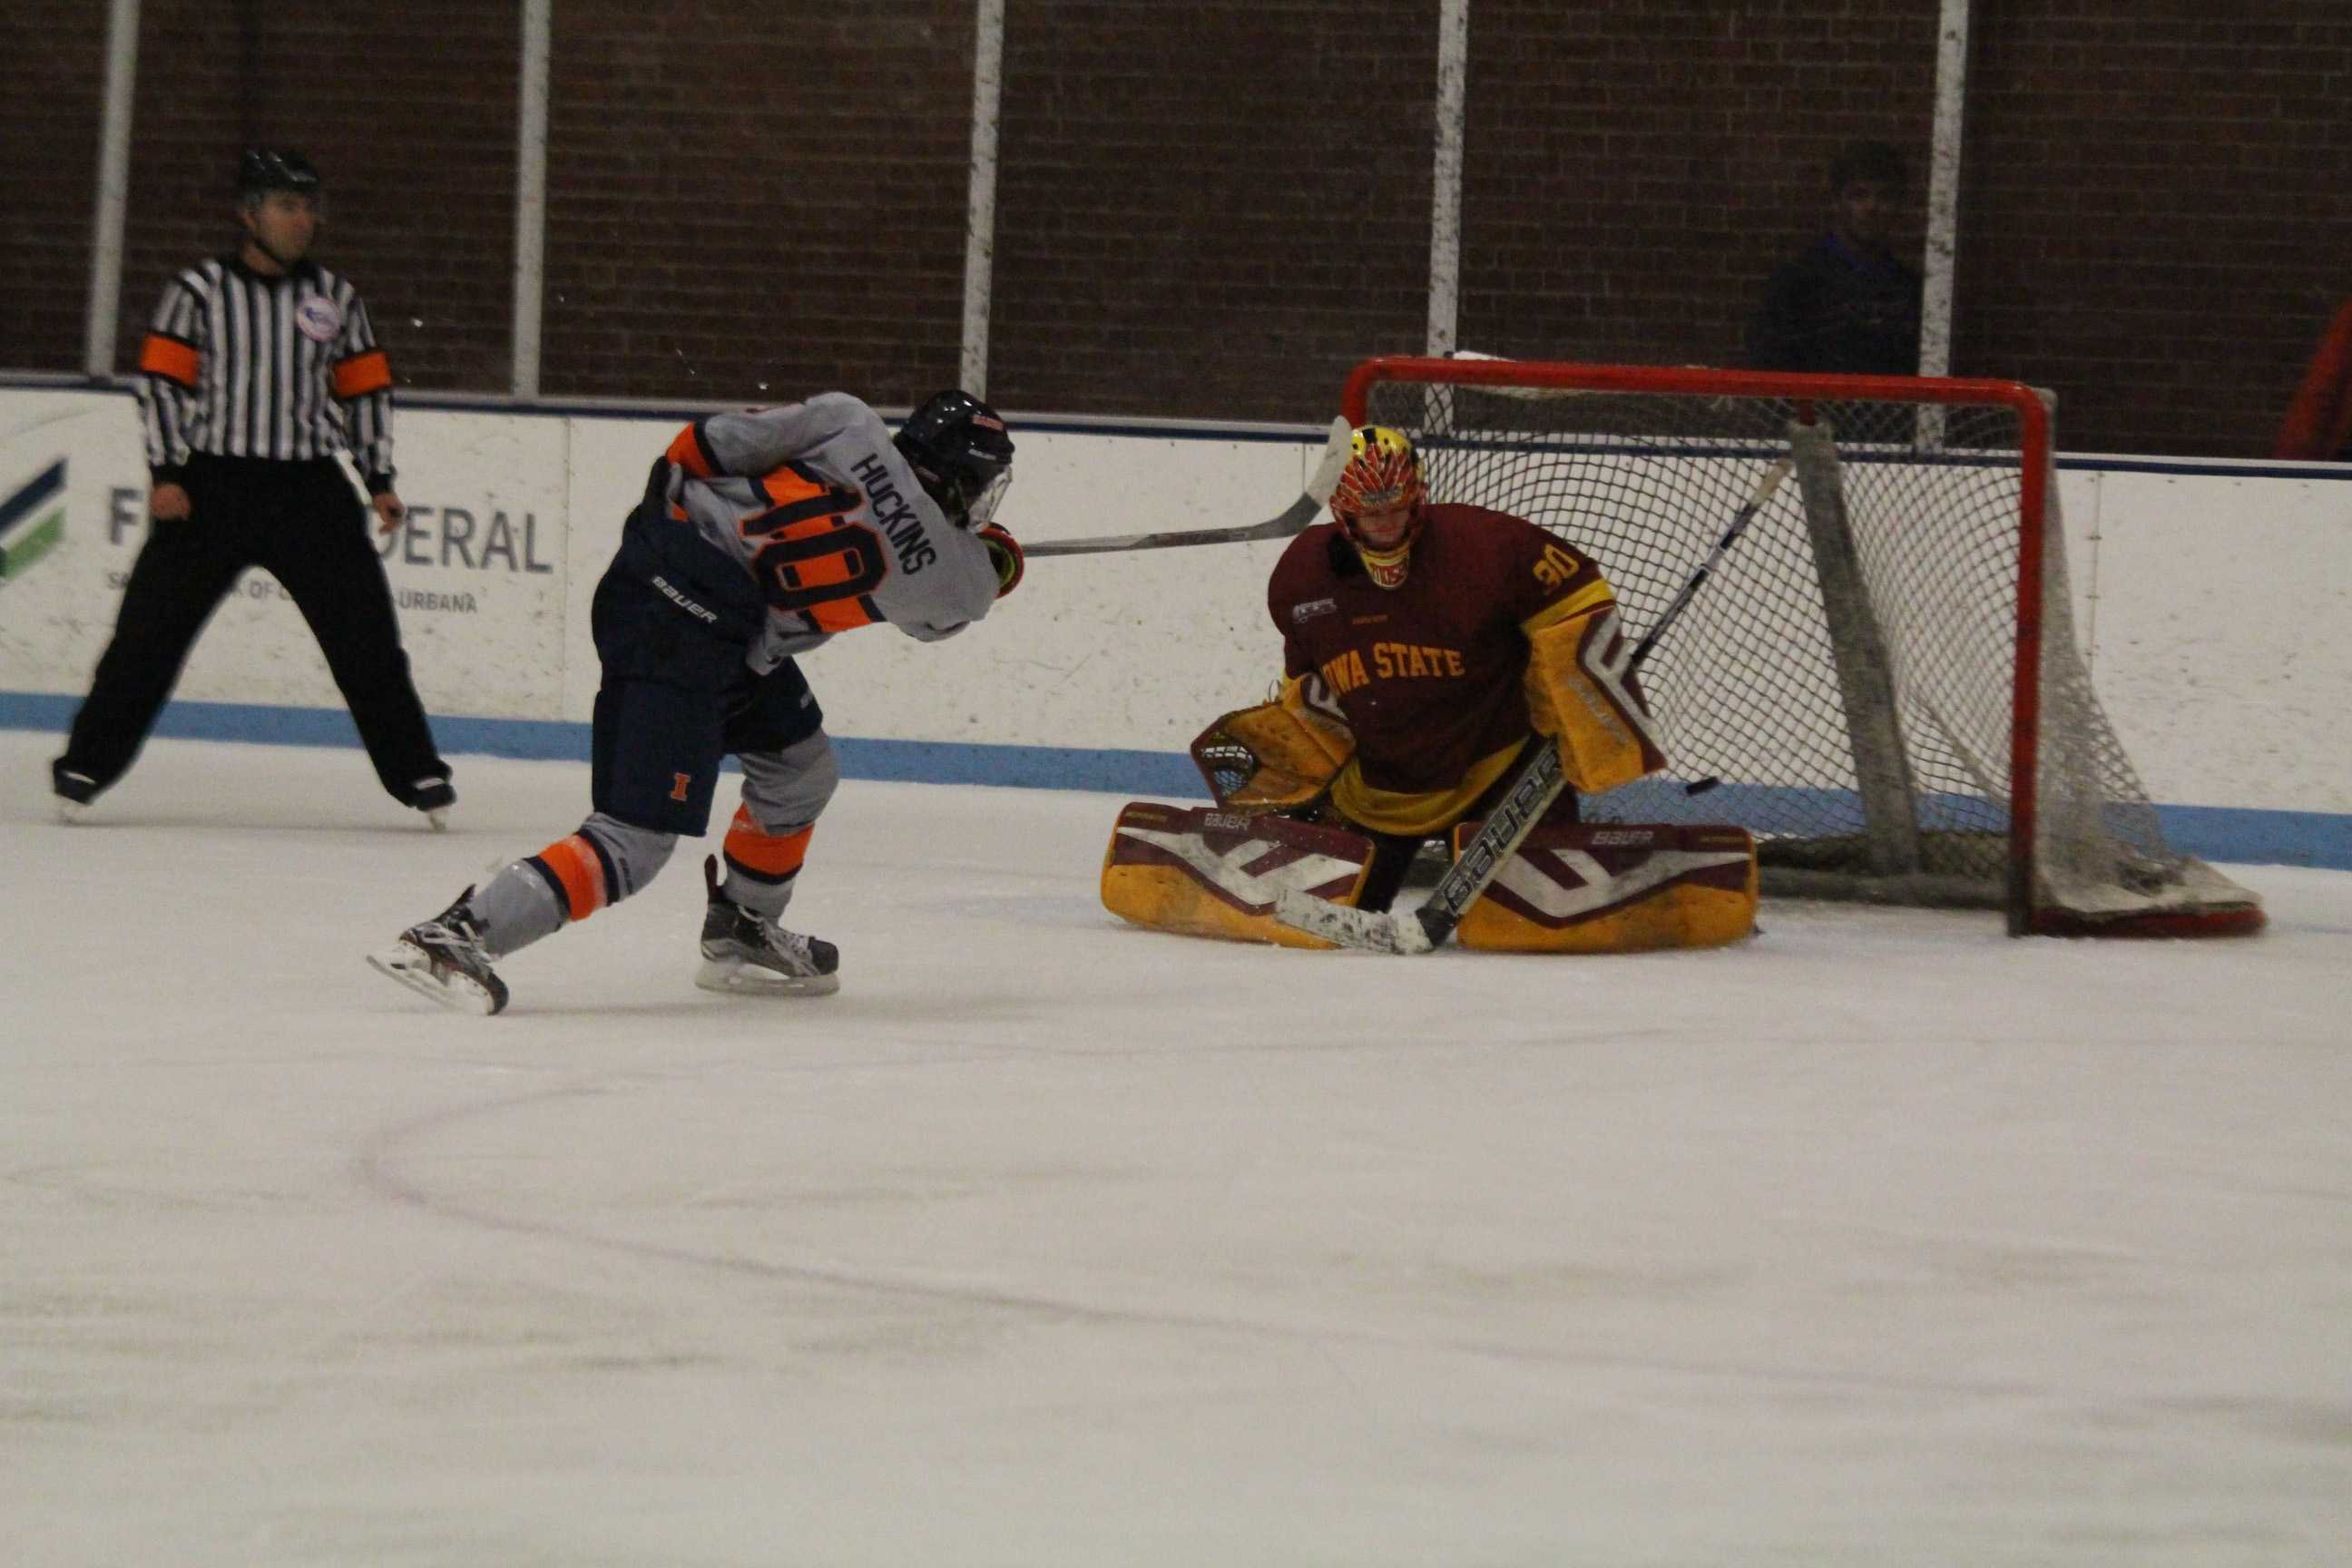 Kendall Huckins (10) takes his penalty shot against Iowa State's goalie and gets a point for Illinois to keep it a close game at the Ice Arena on Friday, Oct. 28, 2016. Illini lost 5-4 to Iowa State in a shootout.